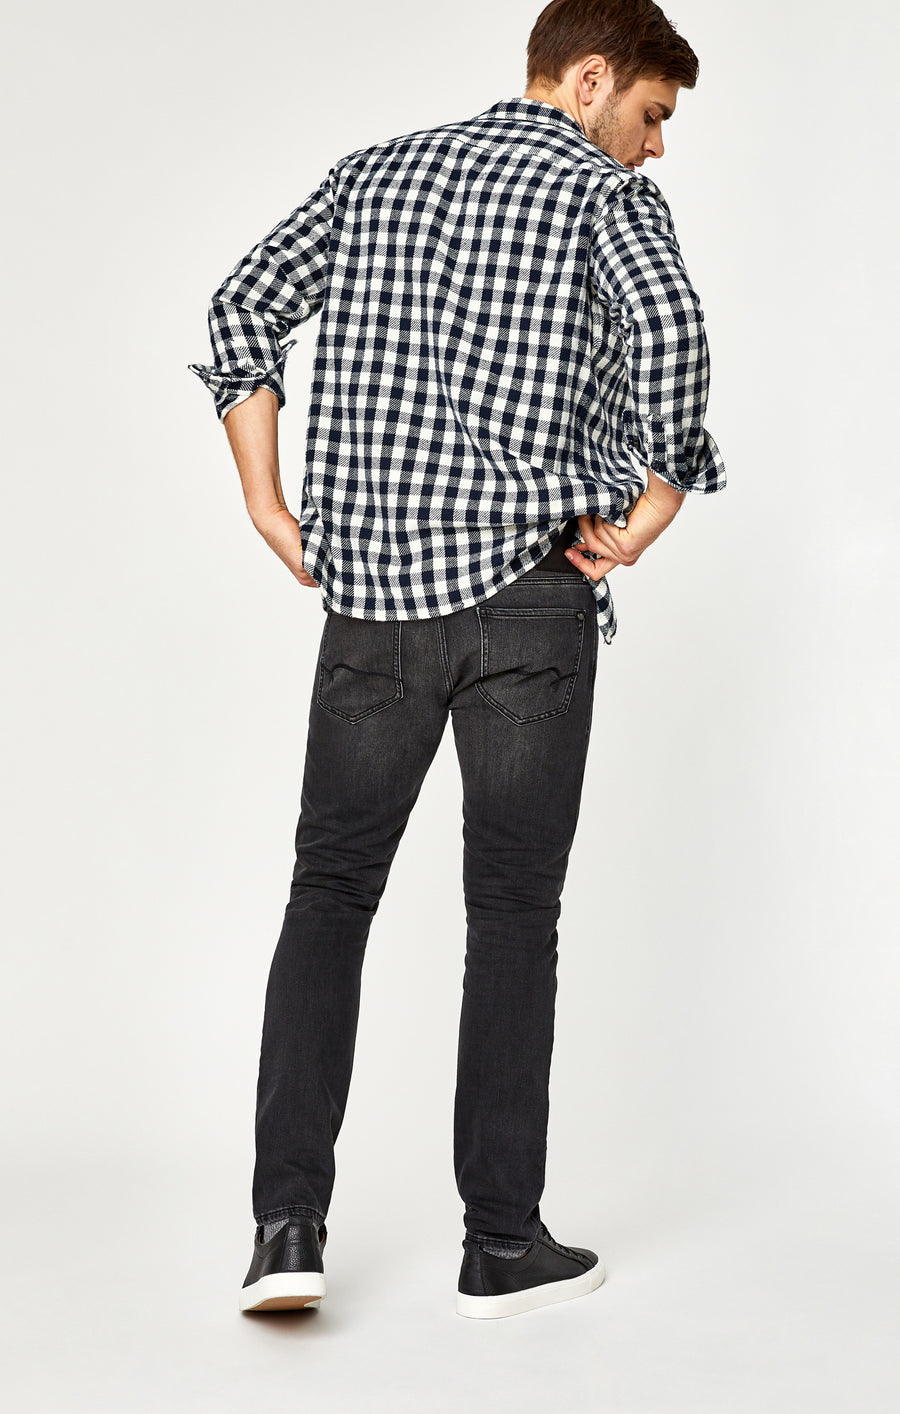 JAKE SLIM LEG JEANS IN SMOKE WILLIAMSBURG - Mavi Jeans